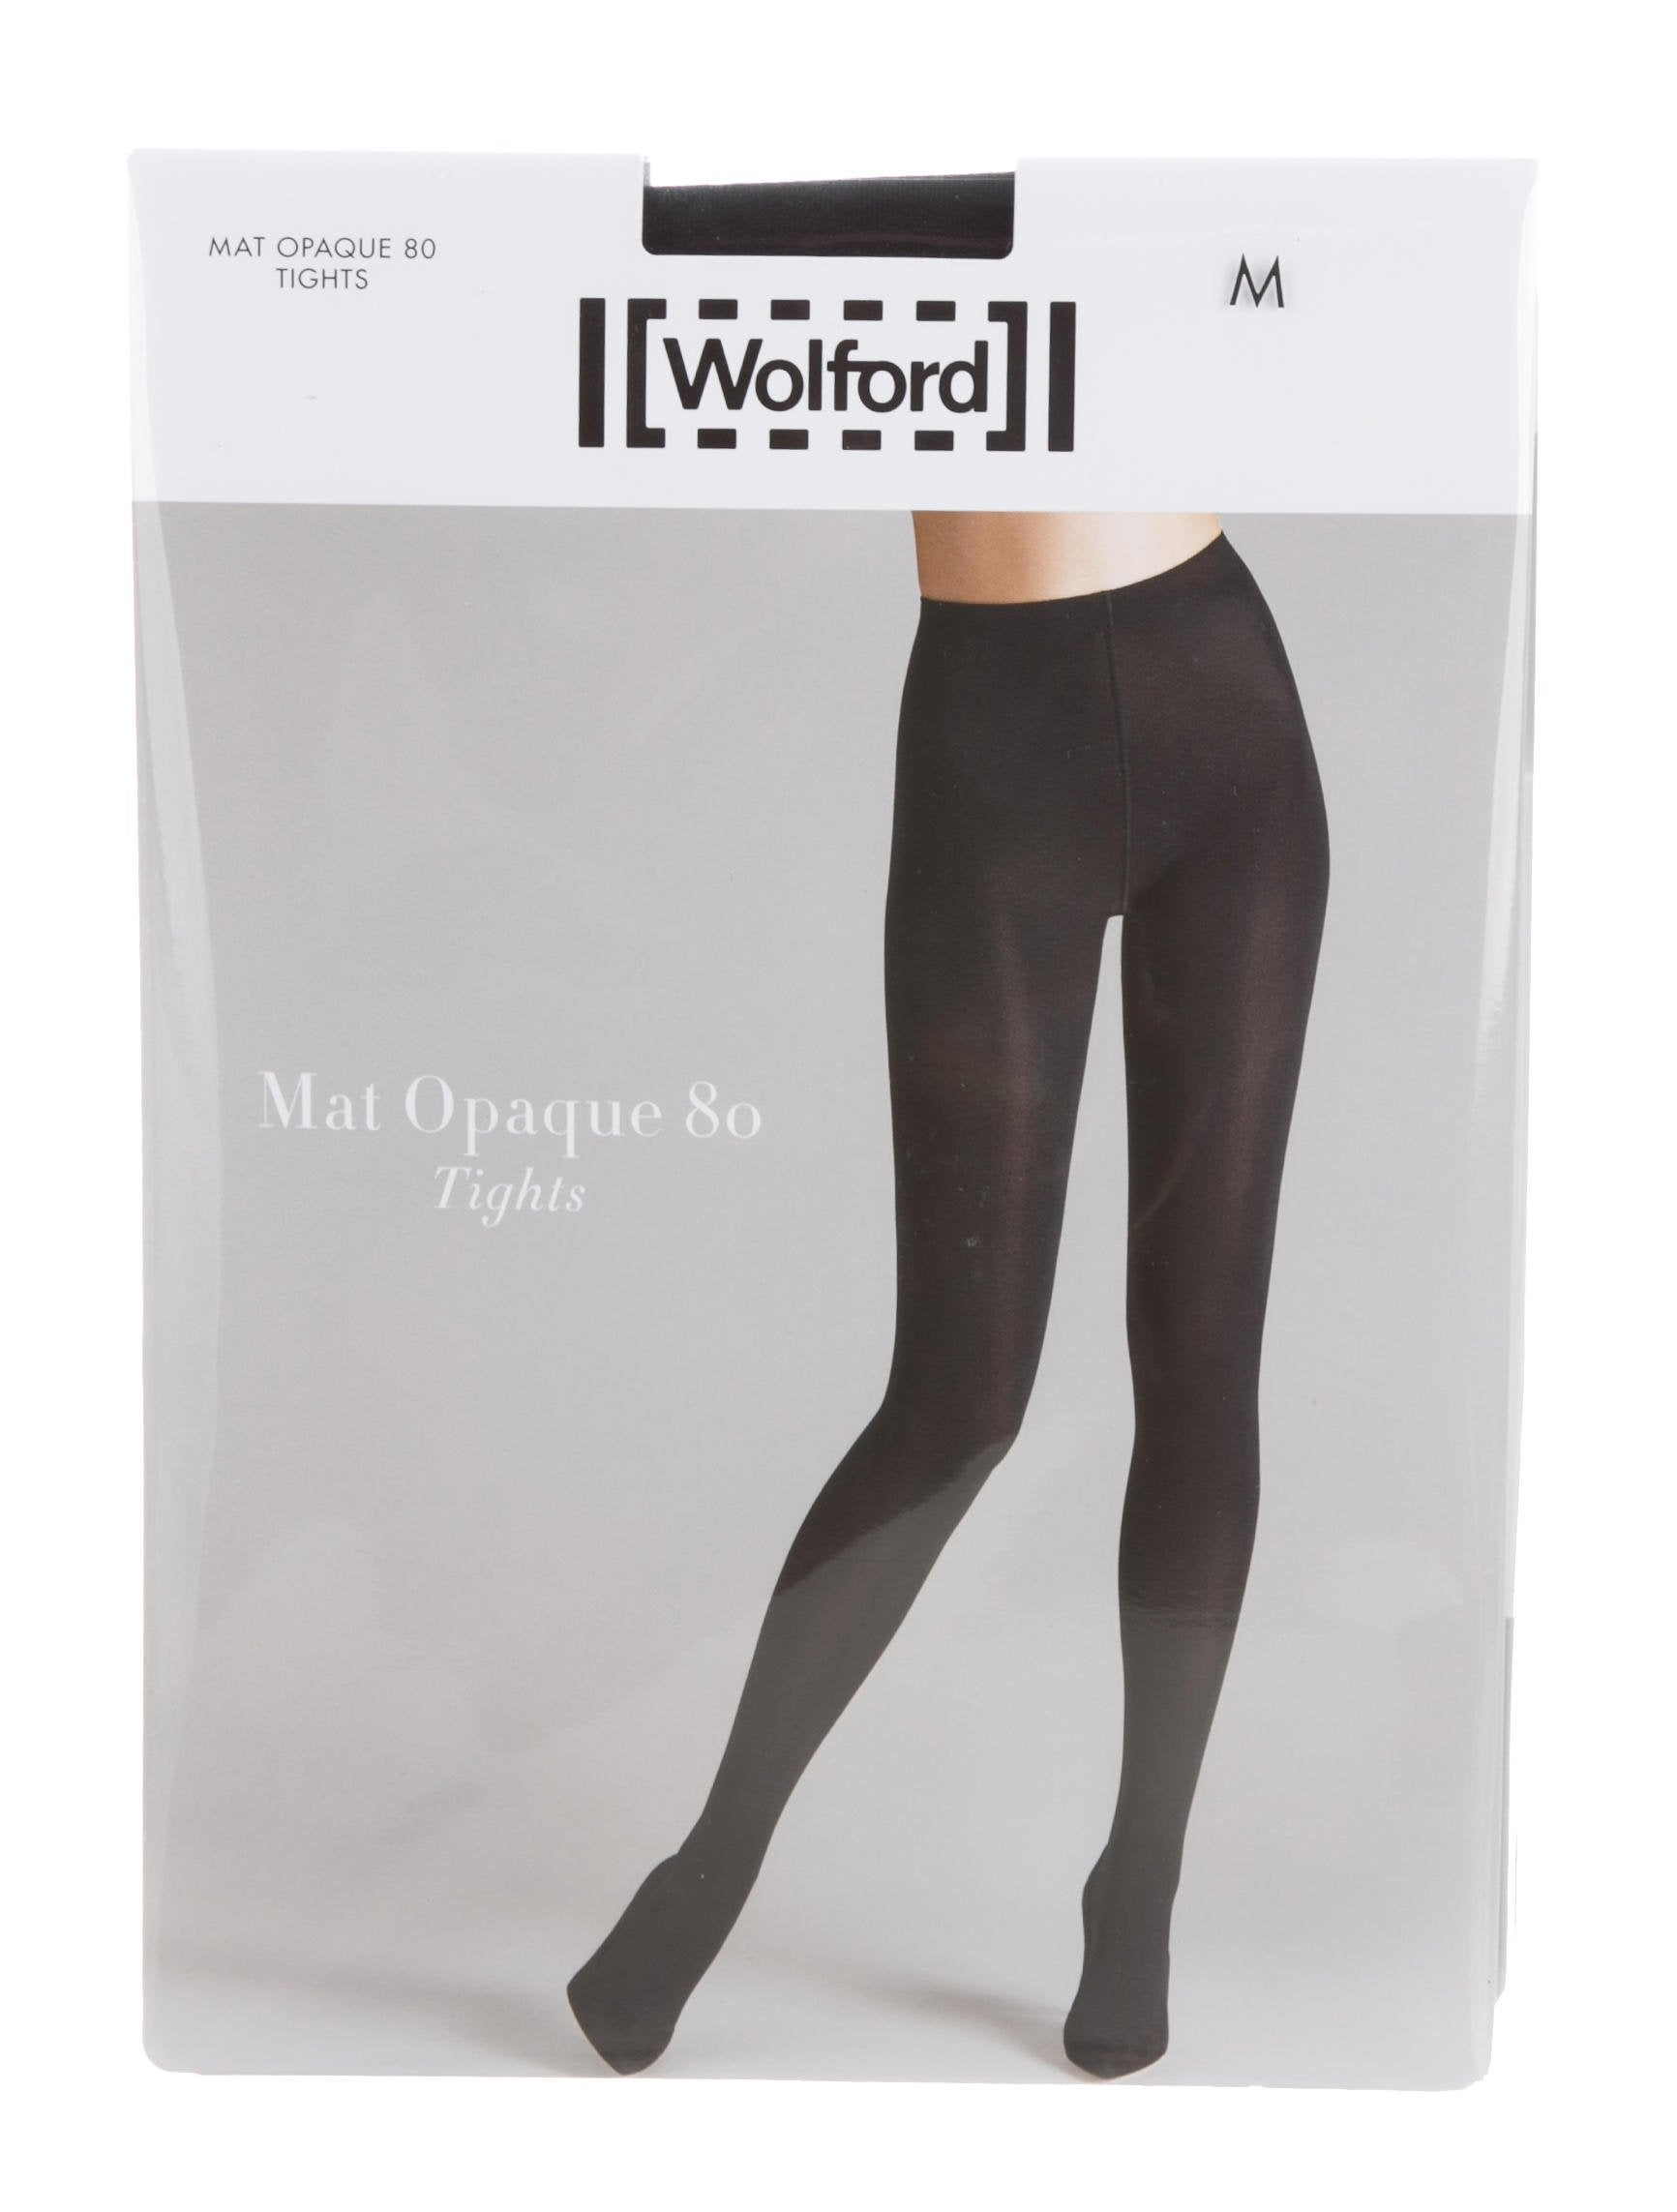 3c4db4c08e3 Wolford Mat Opaque 80 Tights - Accessories - WWF23544